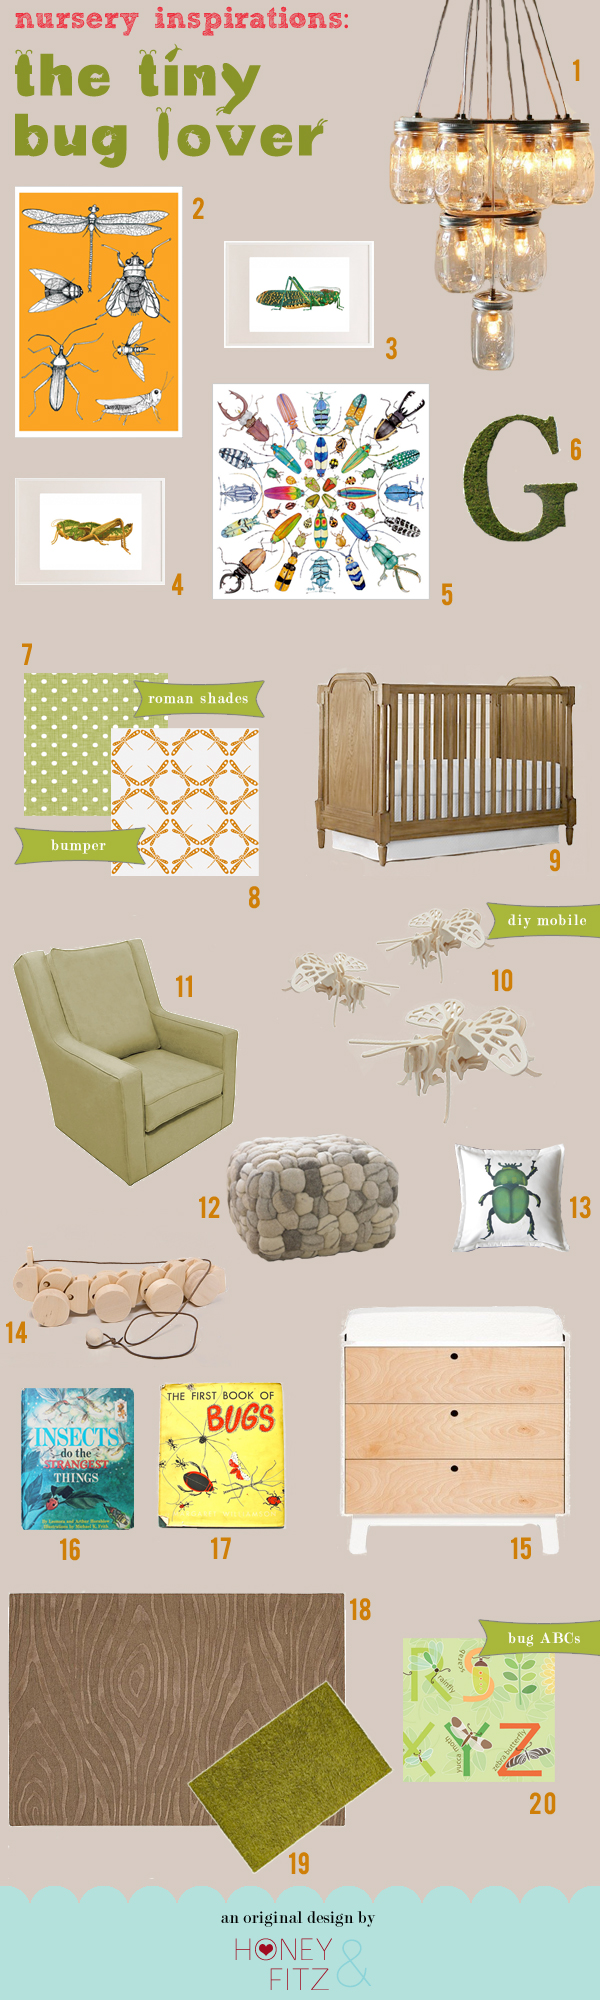 honey-and-fitz-bug-lovers-nursery